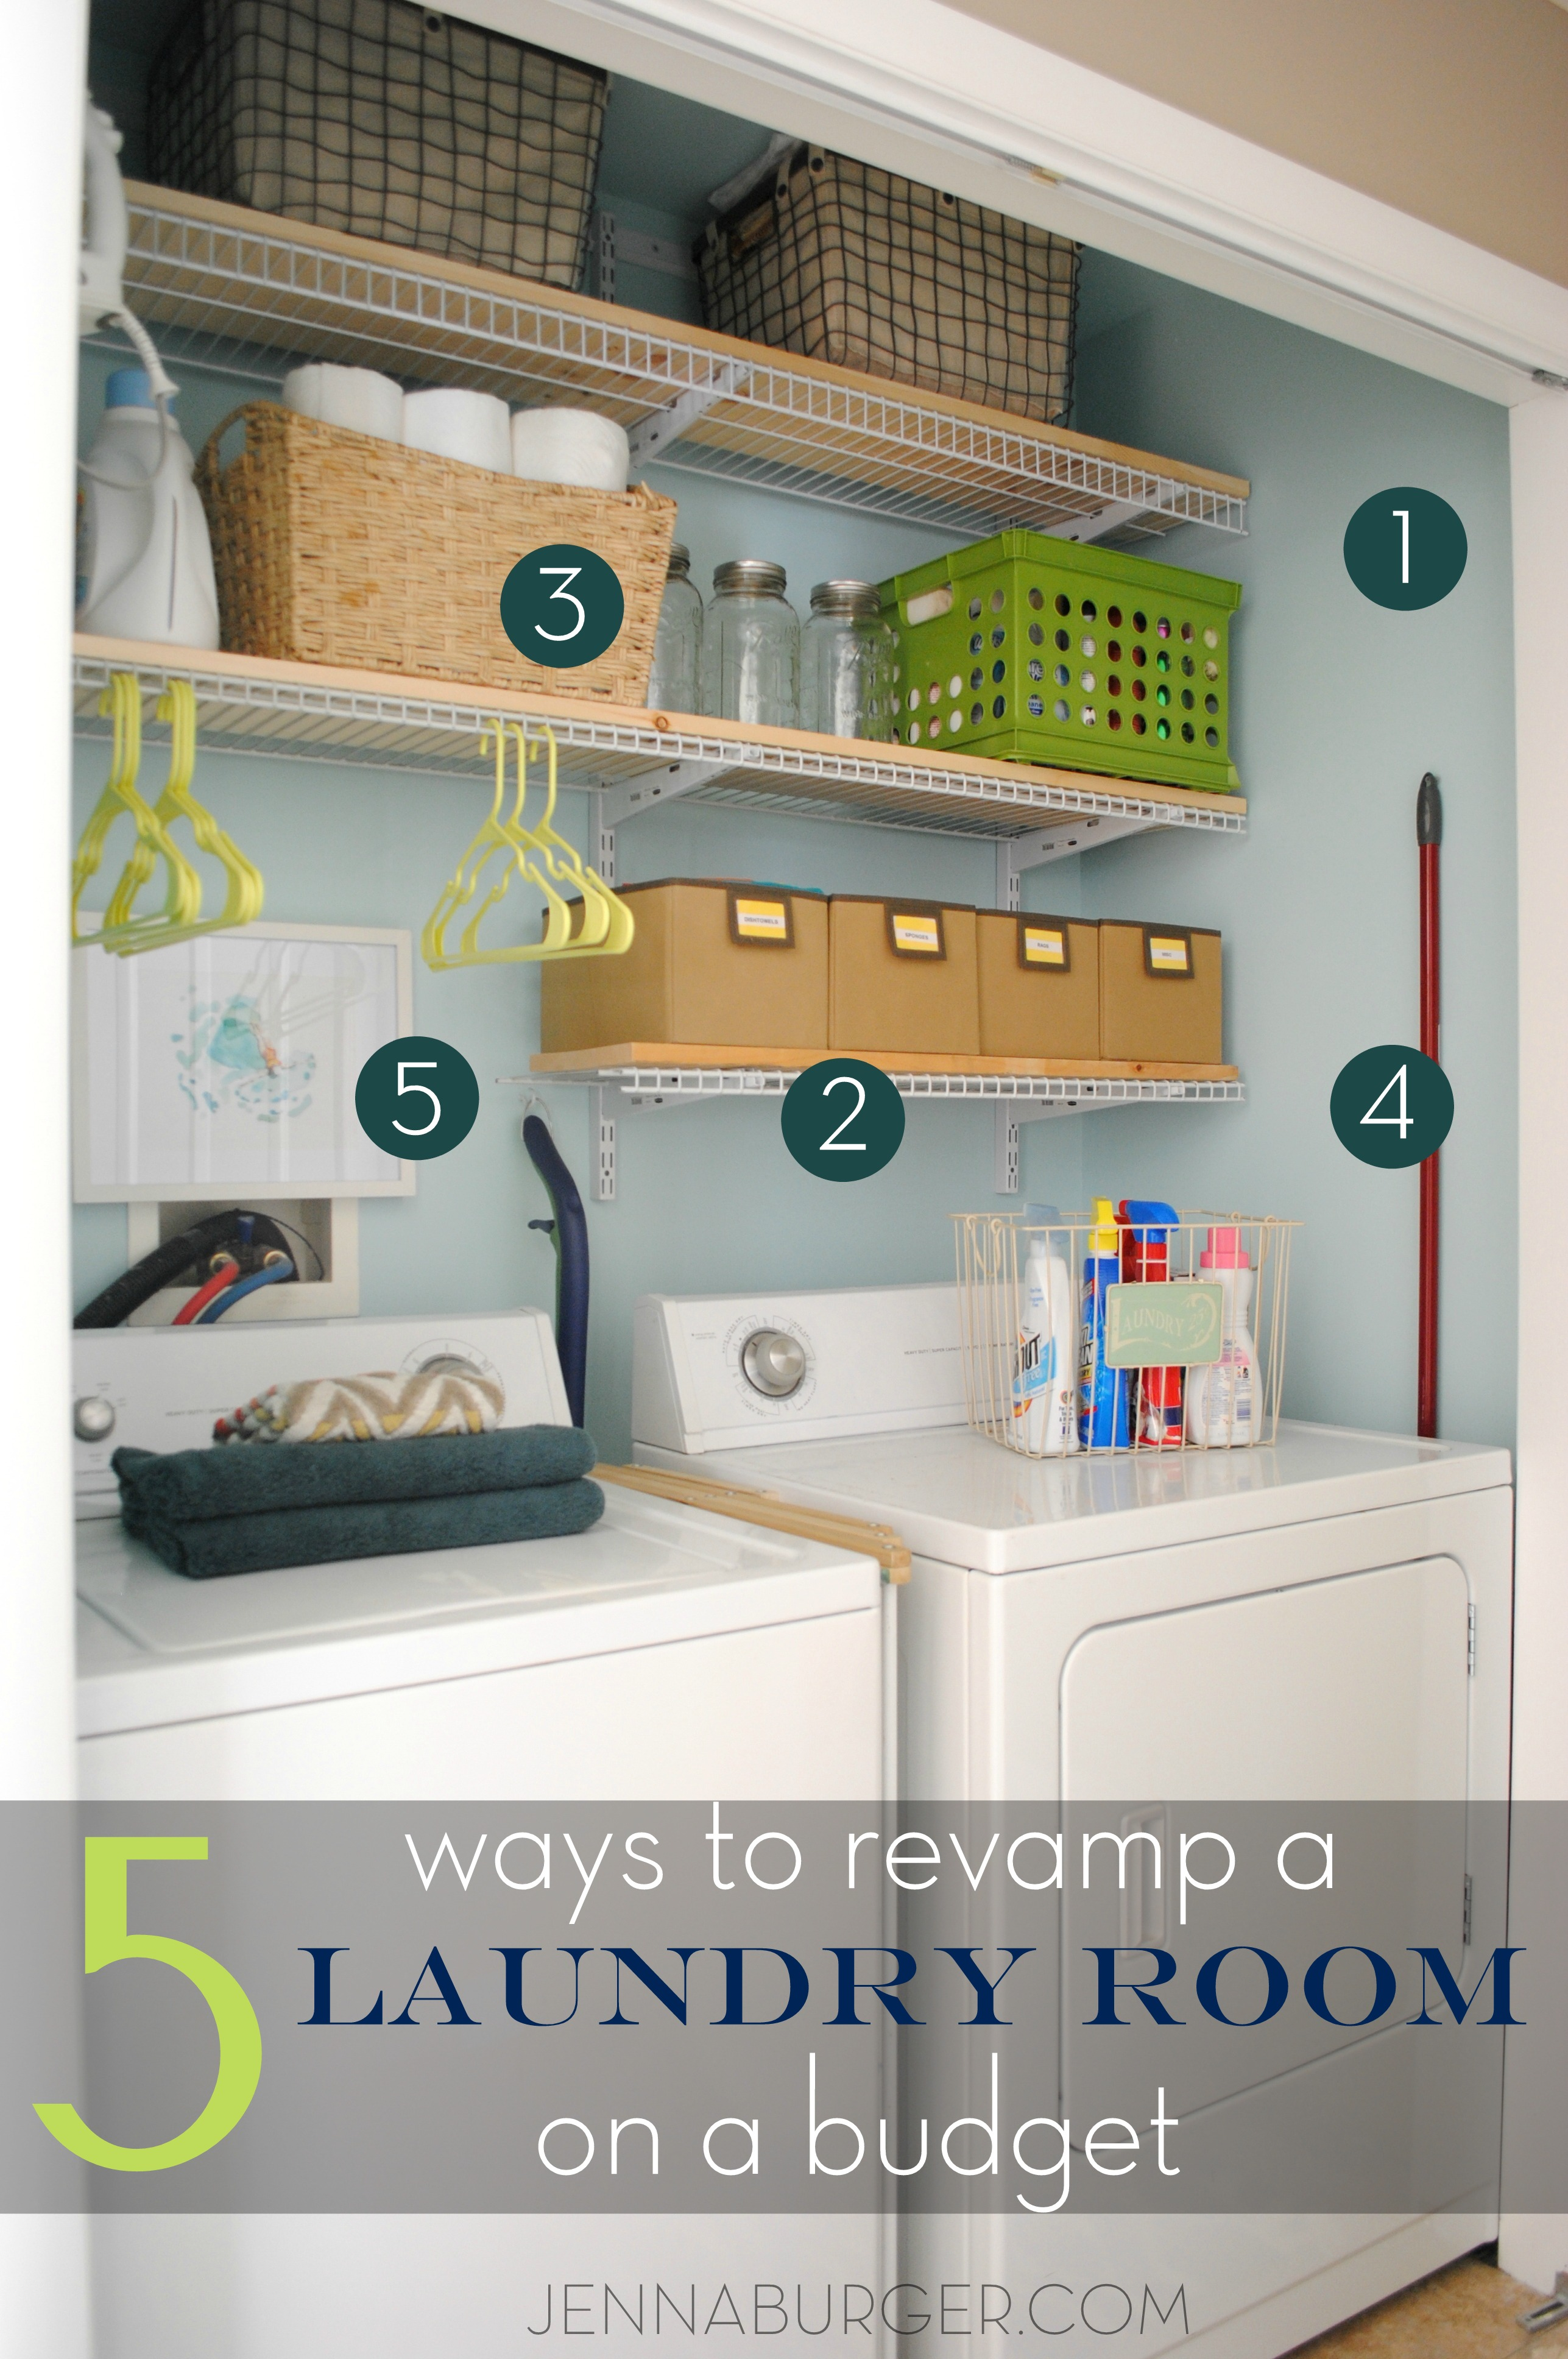 5 Ways Tips For Revamping A Laundry Room On A Budget See How I